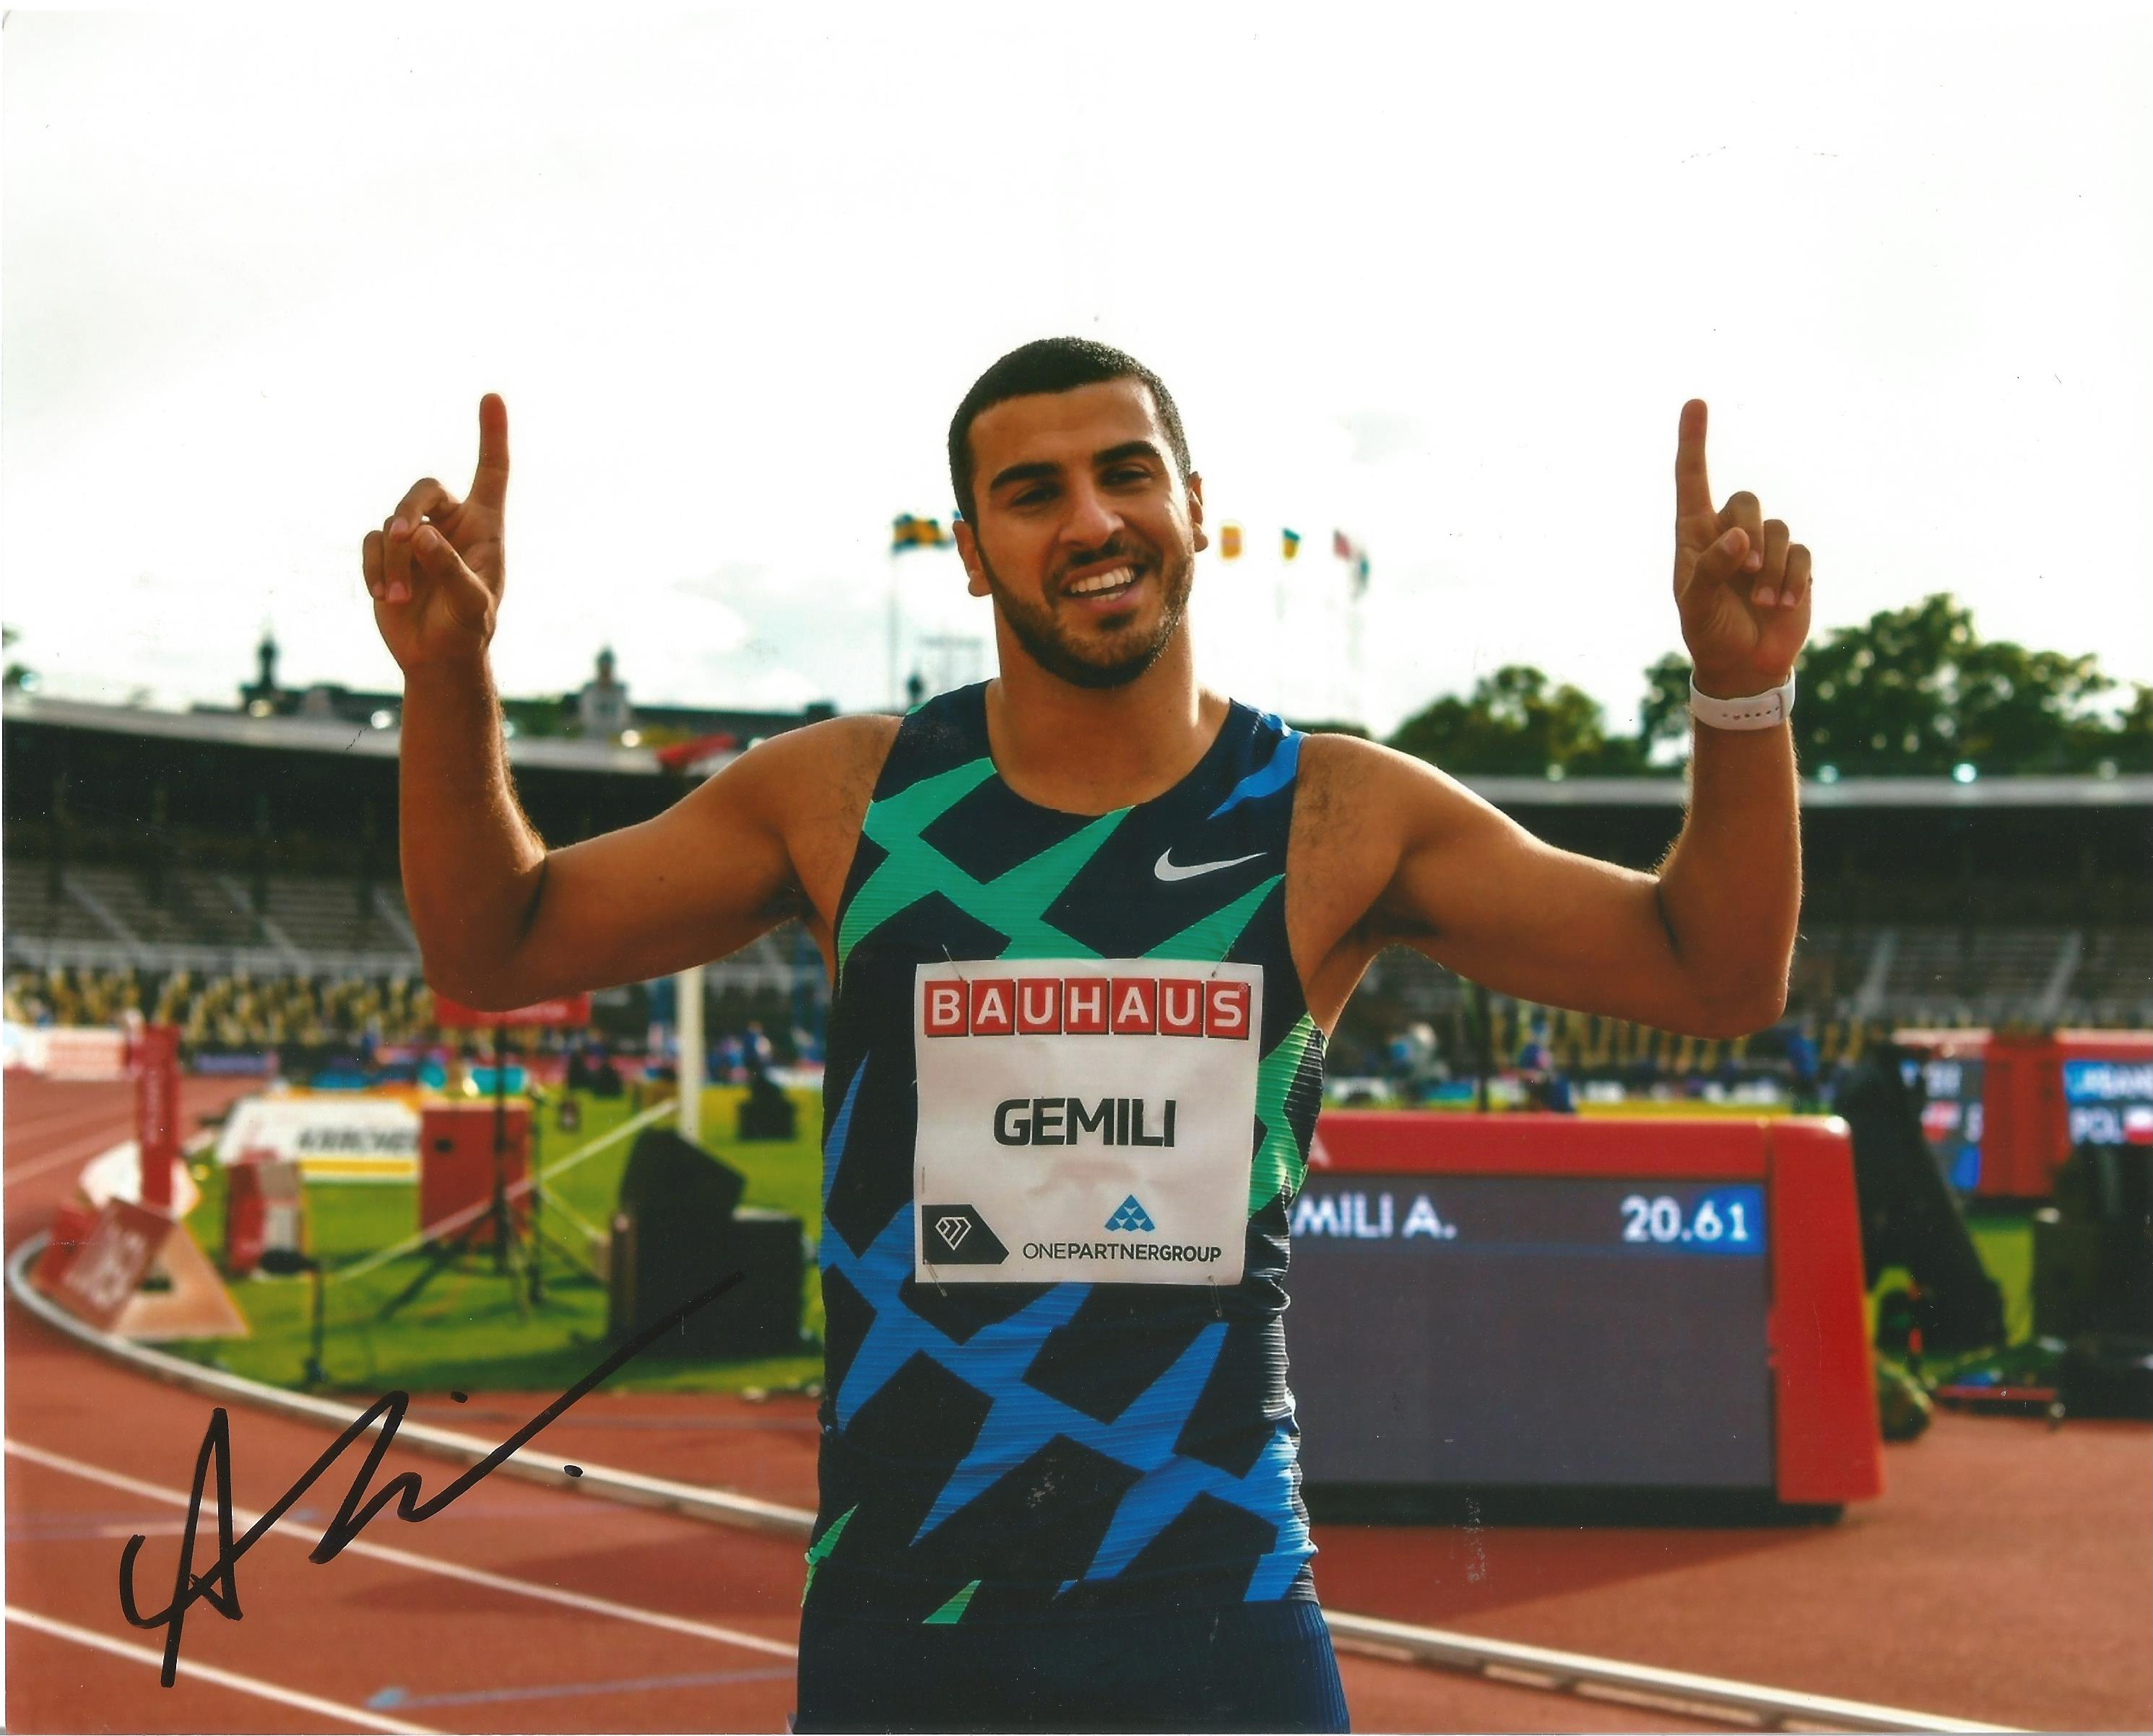 Adam Gemili Signed Athletics 8x10 Photo. Good condition. All autographs come with a Certificate of